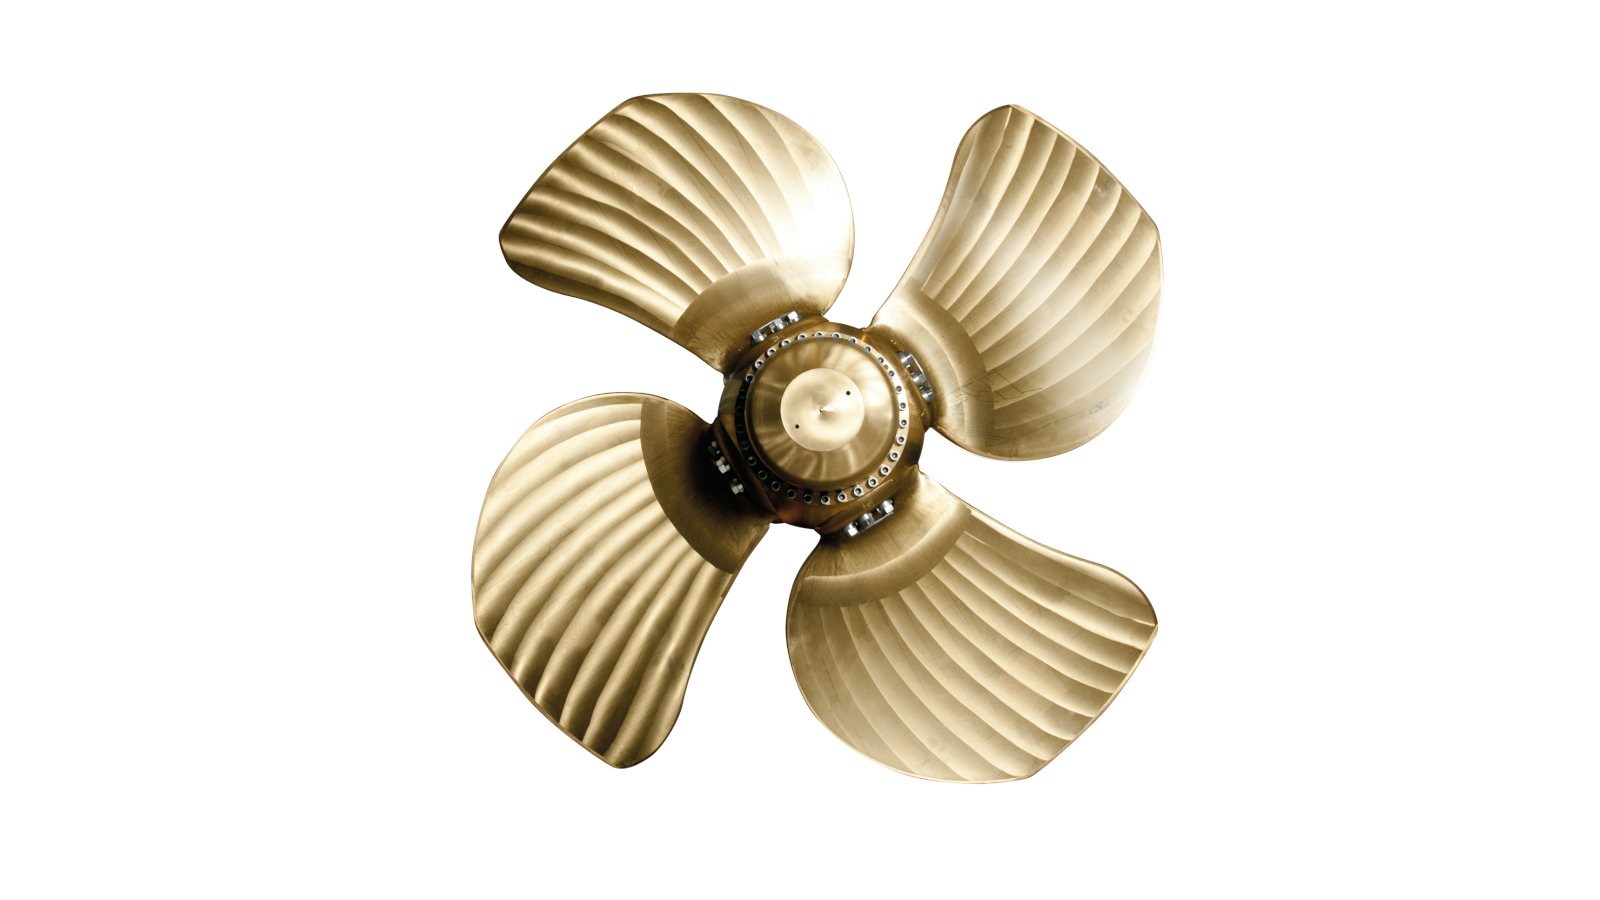 Controllable-pitch propeller (Marine Propulsion Propeller, MPP)